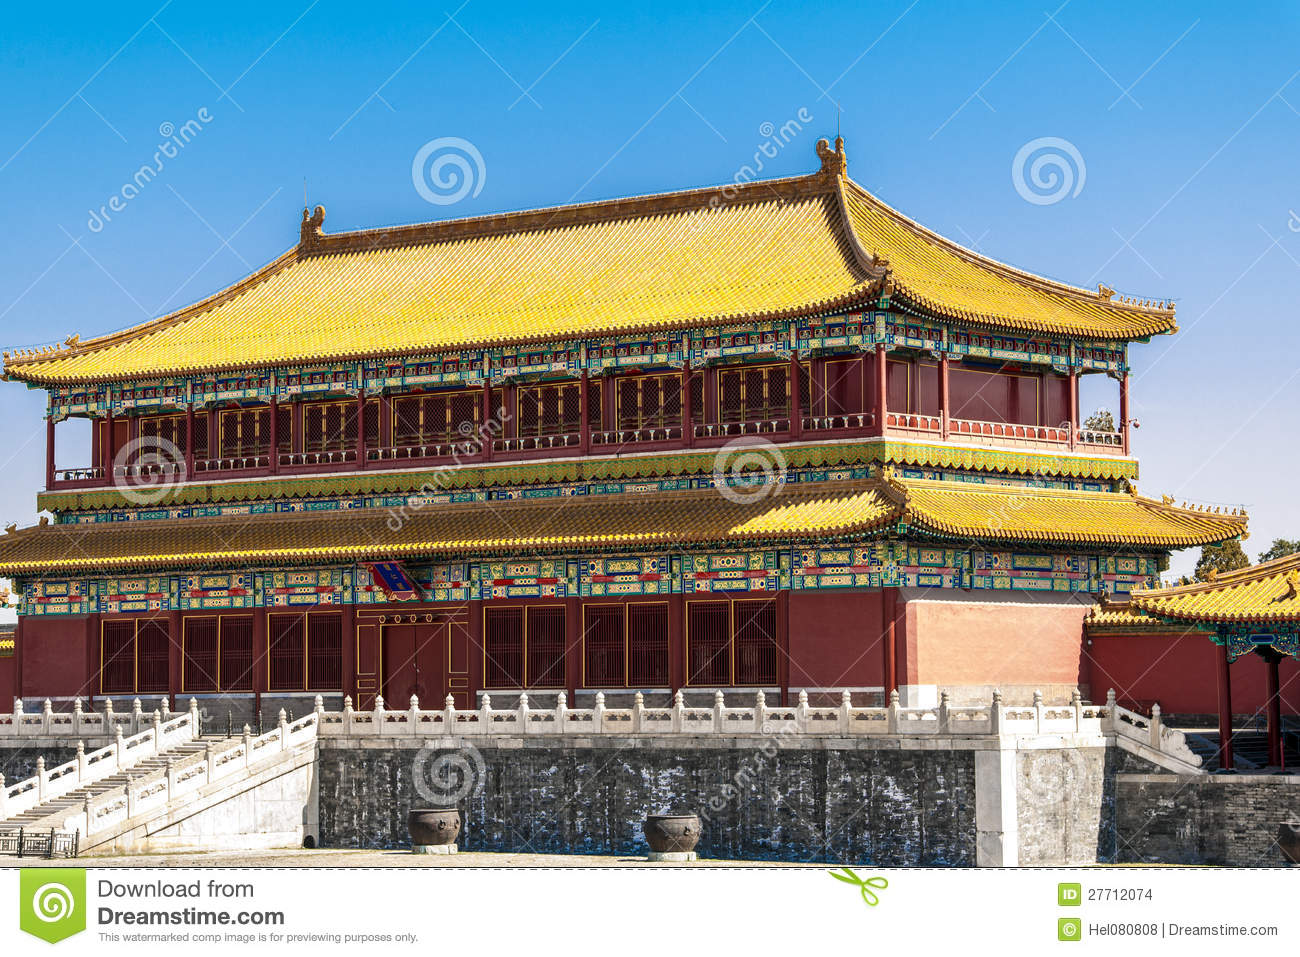 Temple in Beijing, China